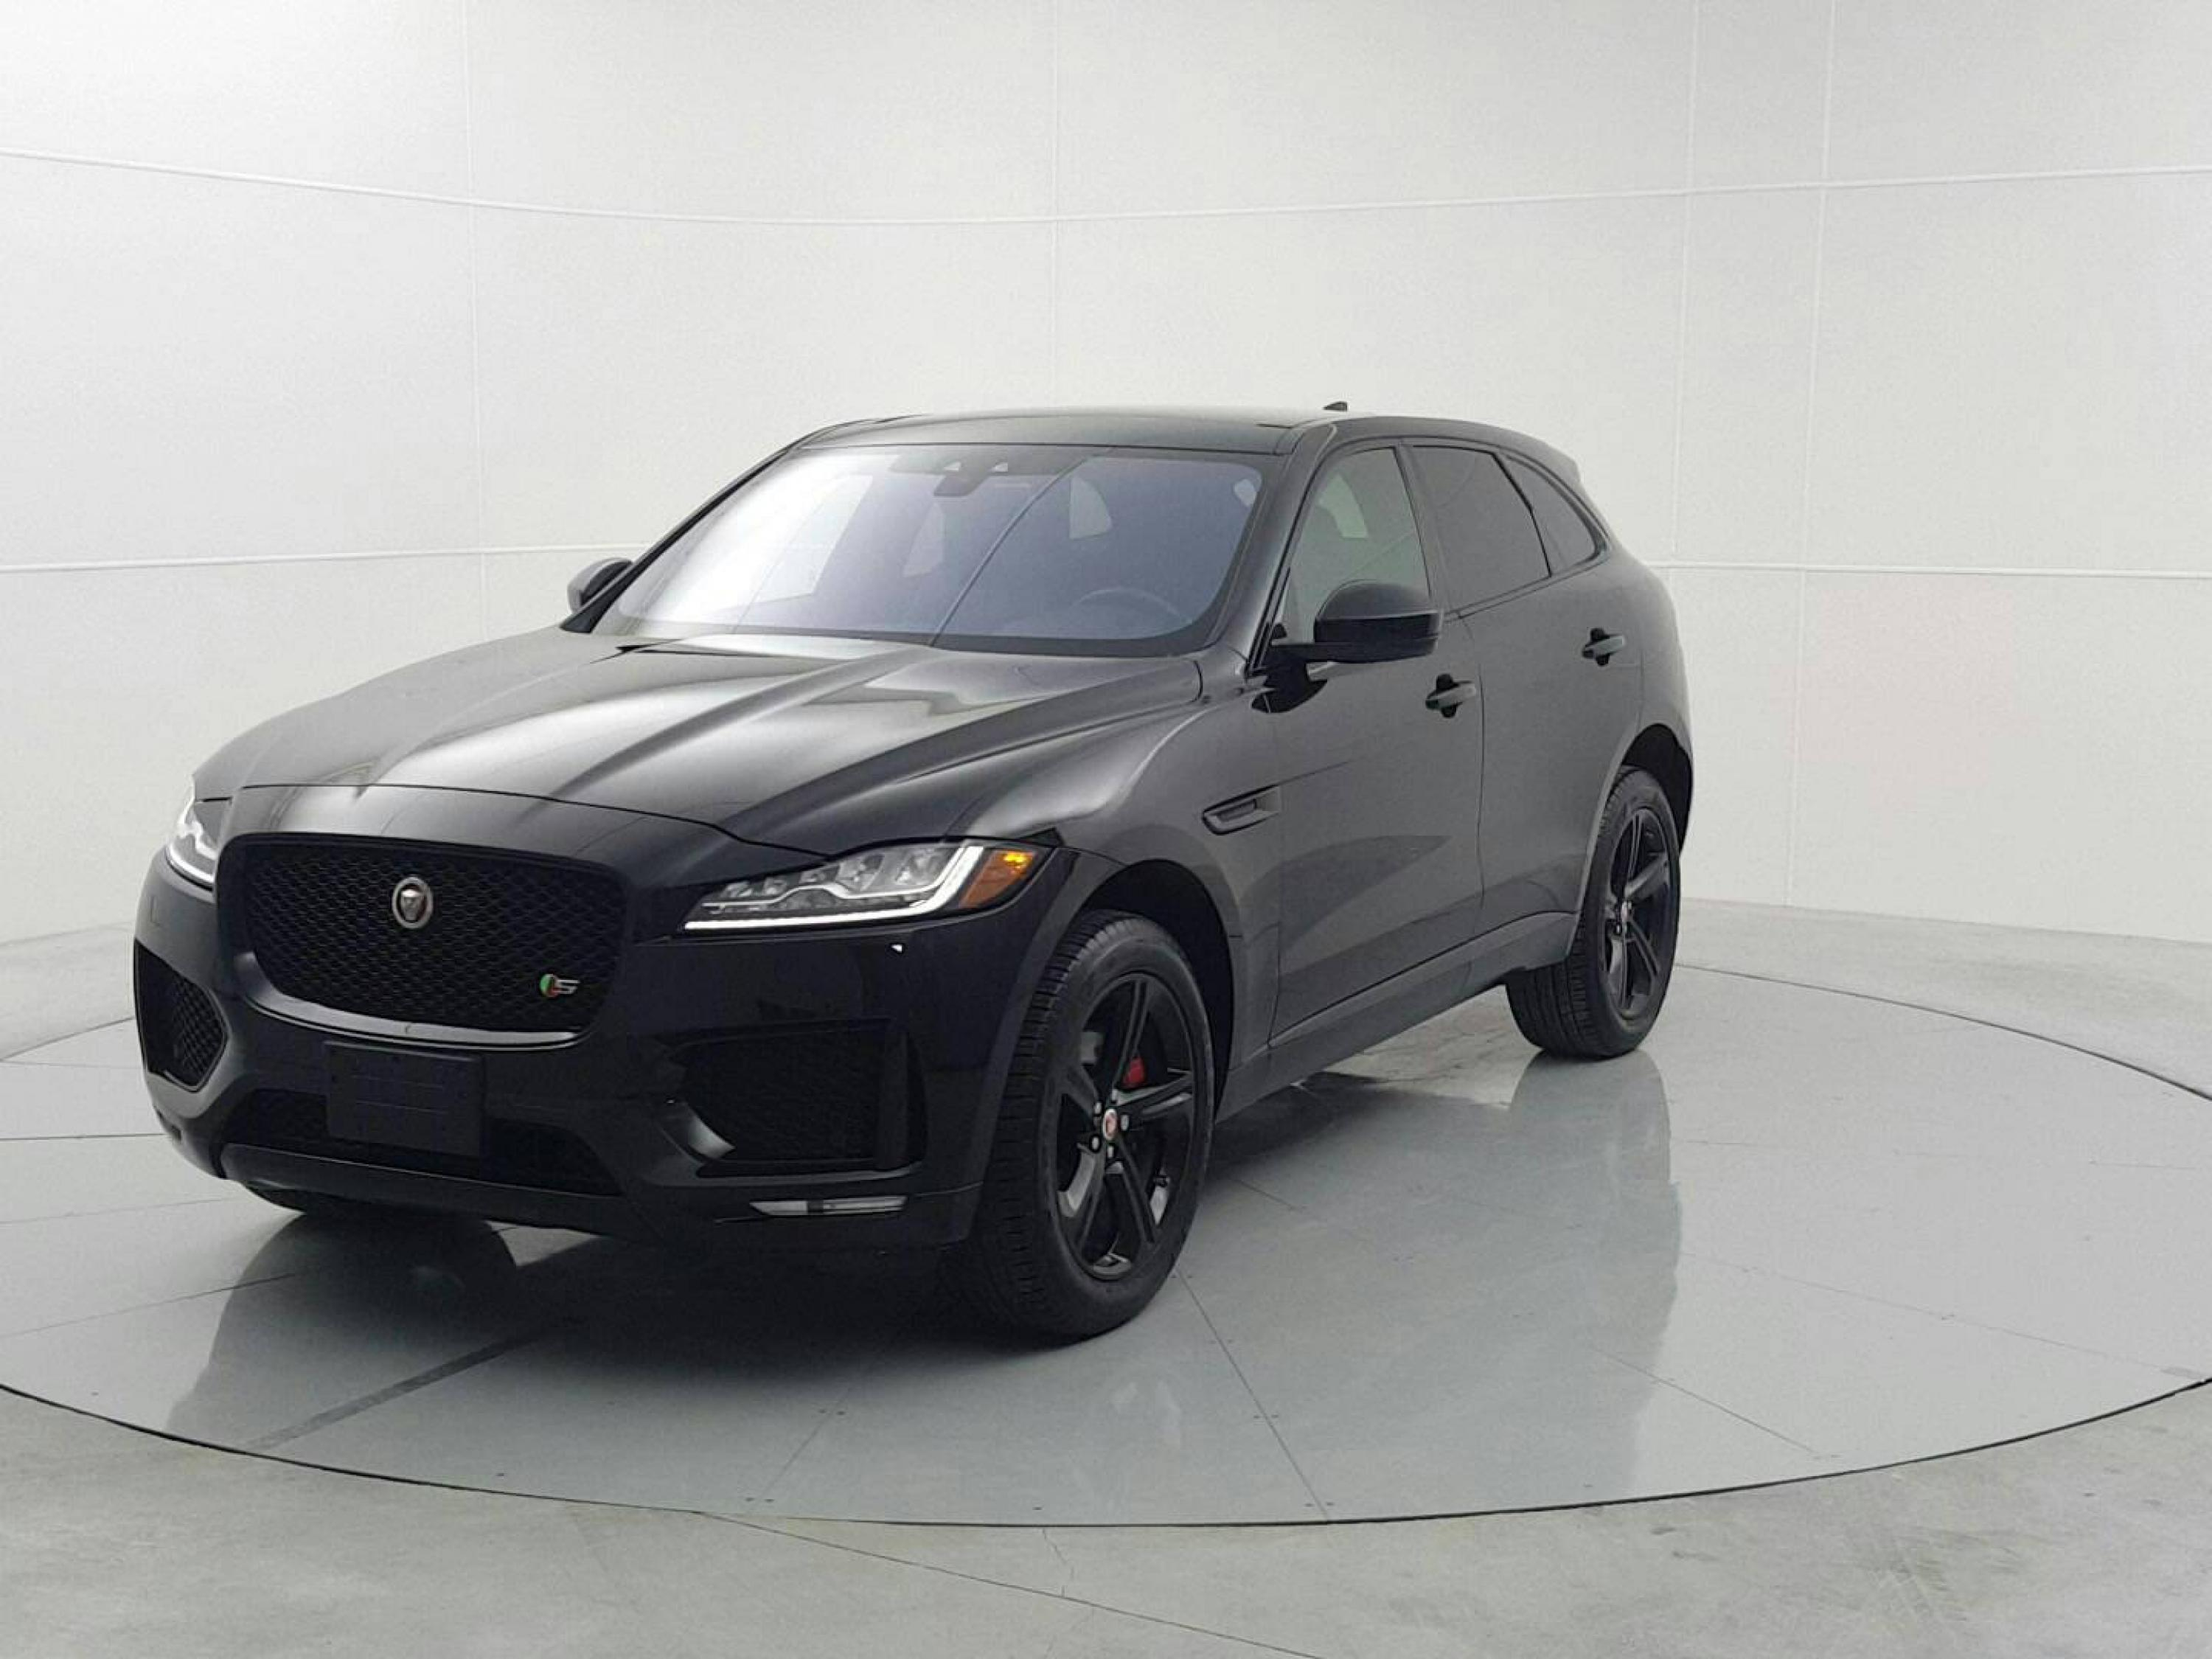 Pre-Owned 2017 Jaguar F-Pace S April Special: 90 Day Payment Deferral!